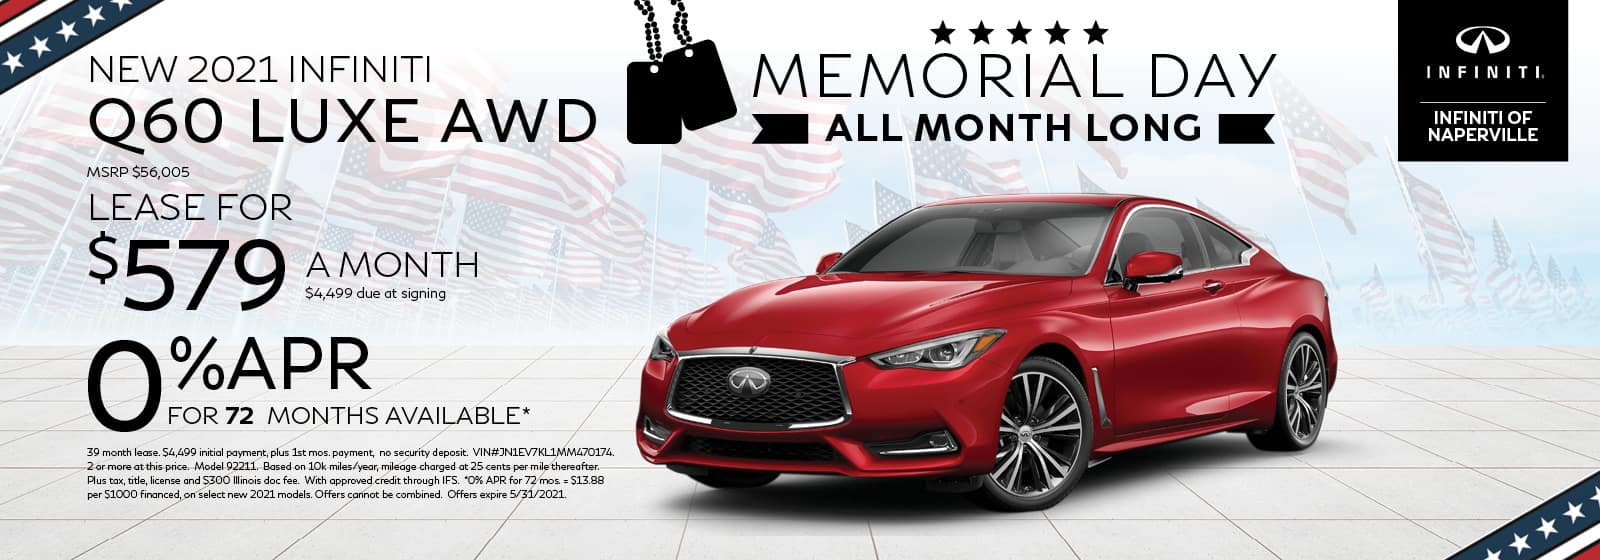 2021 INFINITI Q60 Lease or Finance Offer | INFINITI of Naperville